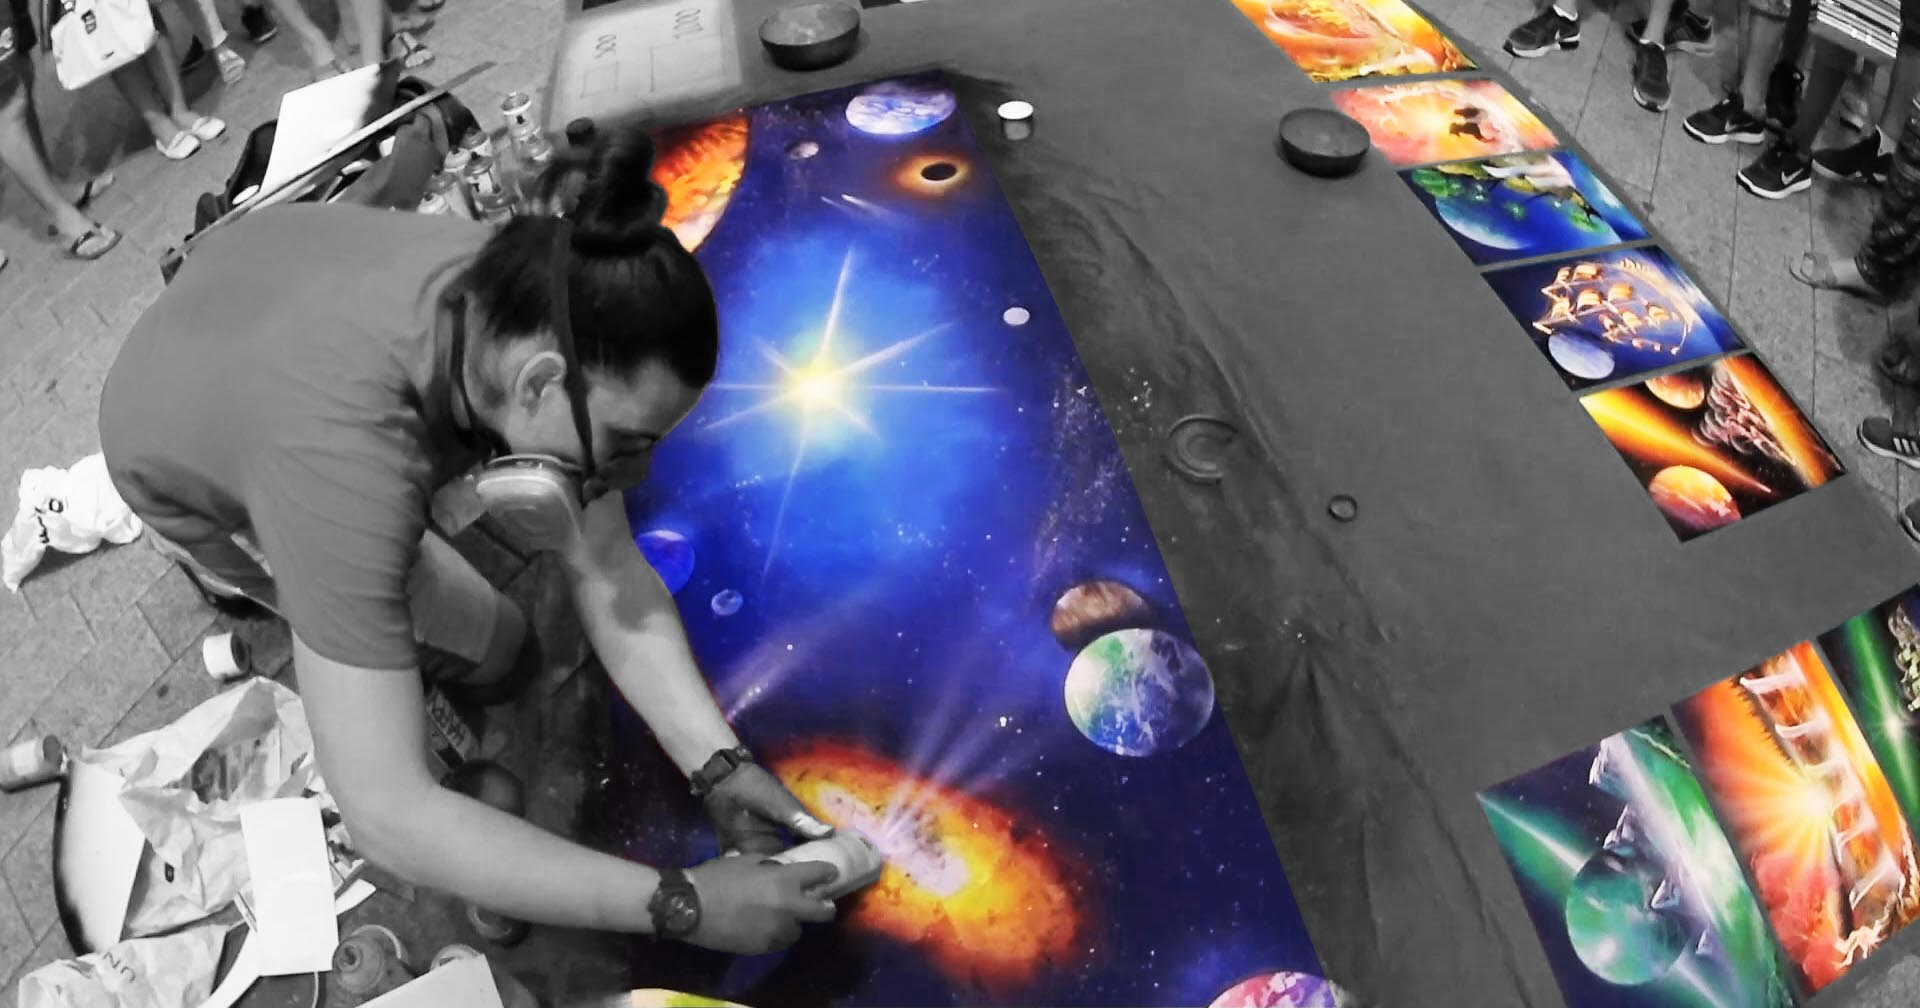 Skech Art Online Store - Order awesome Spray Paintings